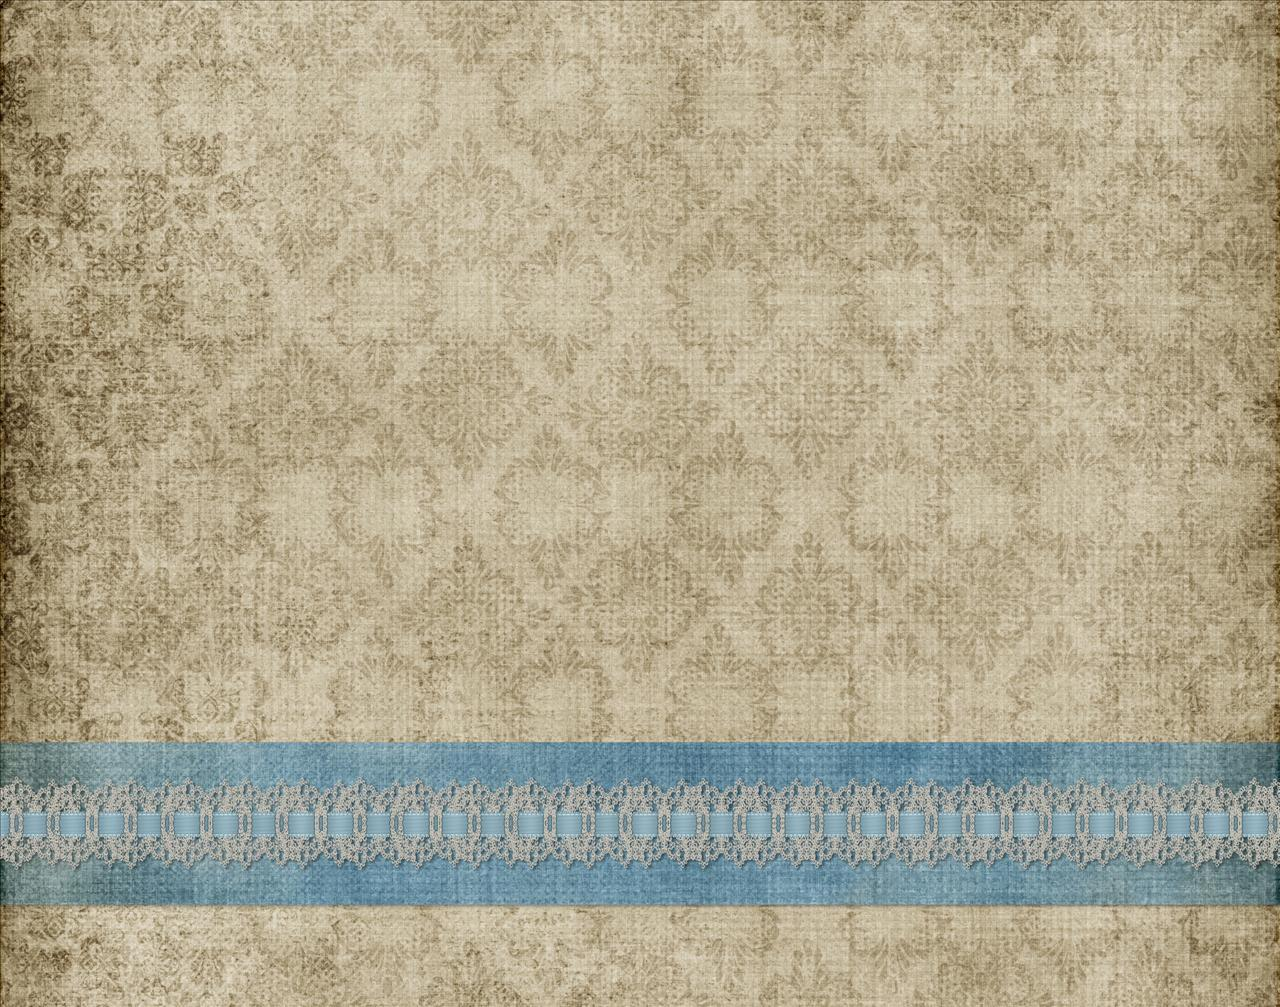 Lace Border Backgrounds